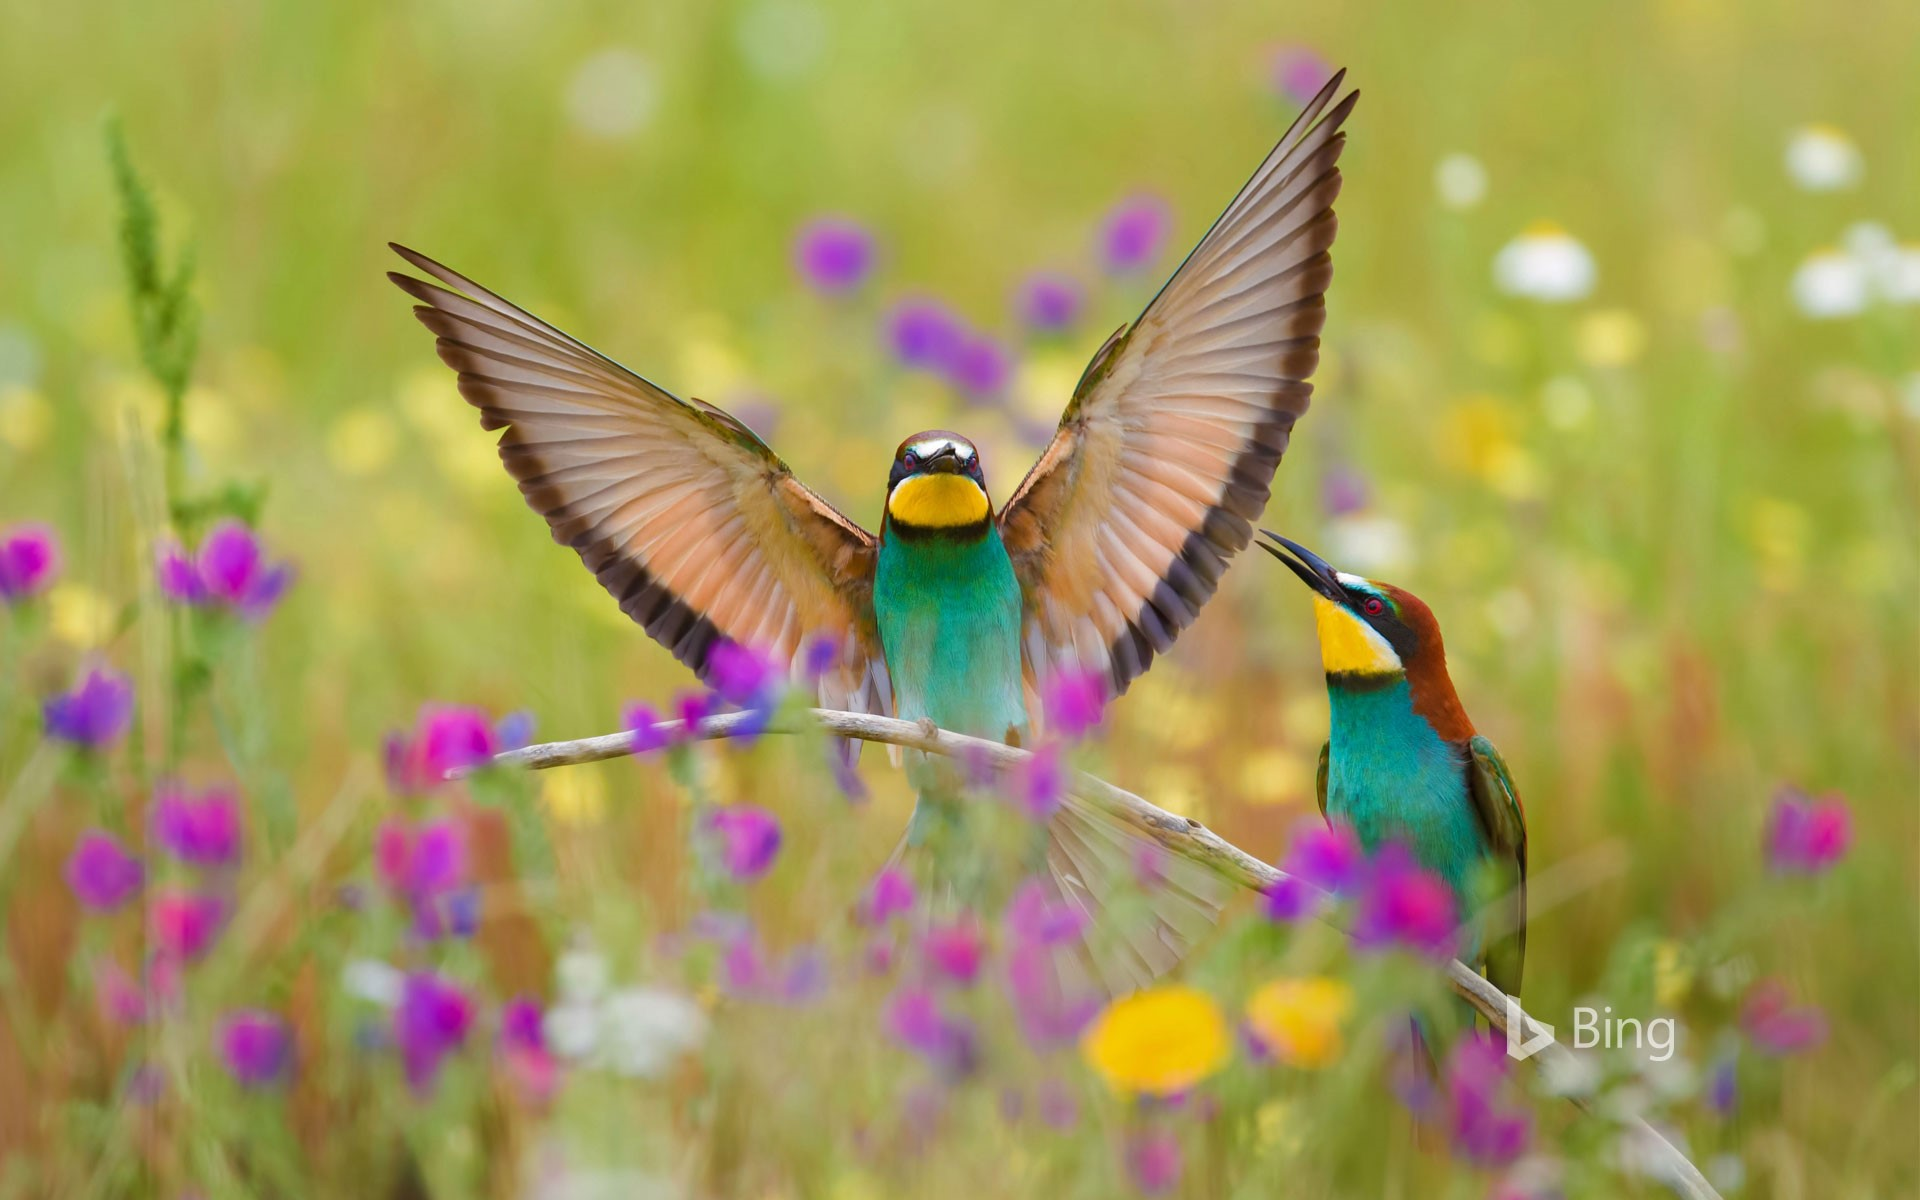 European bee-eaters in the Extremadura region in Spain